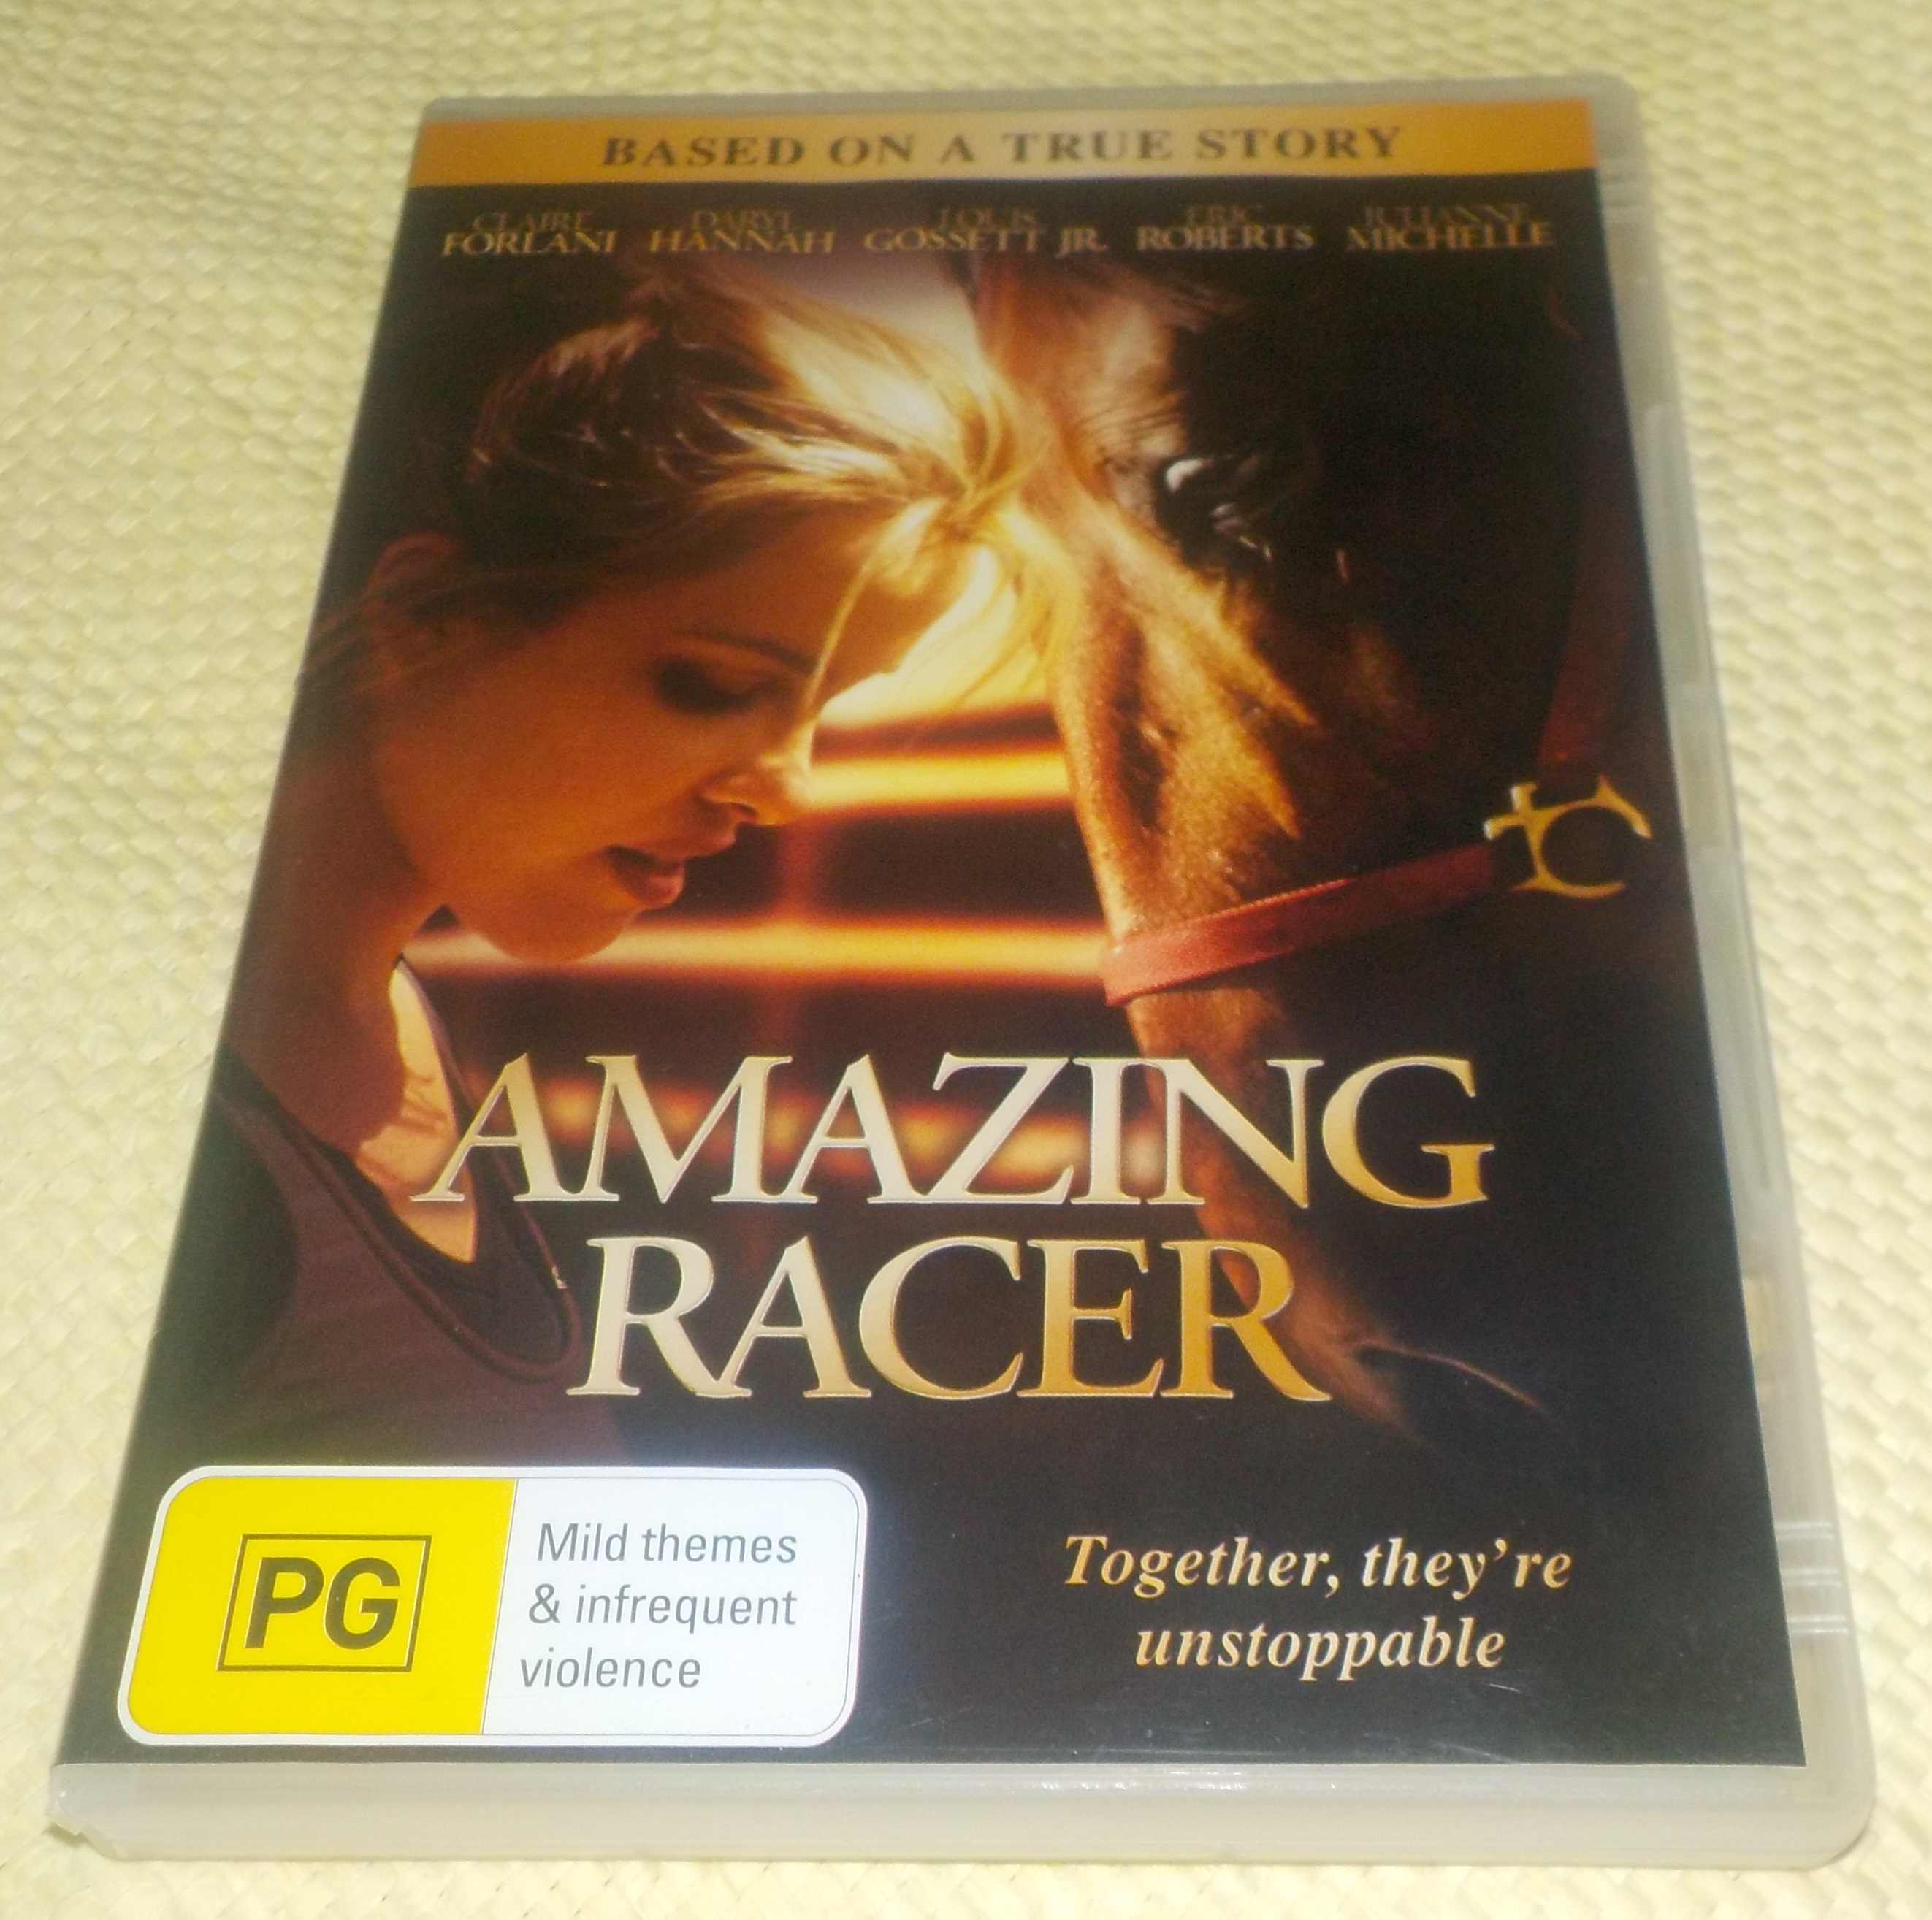 Amazing Racer - Based on a True Story - PG - 92 mins - Used DVD Video